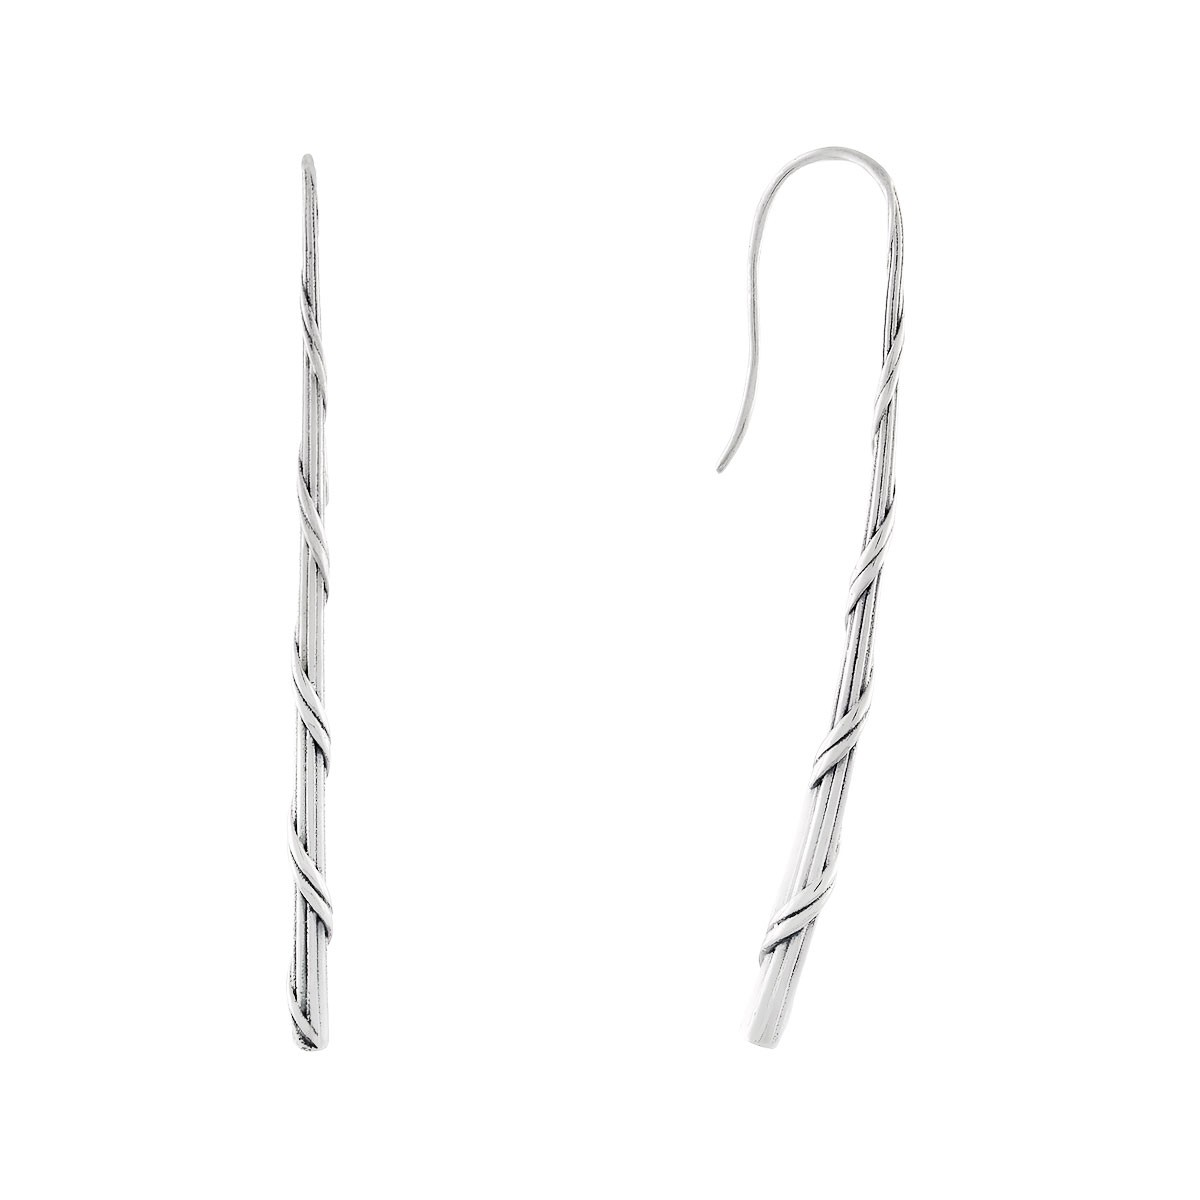 Signature Romance Taper Stick Earrings in Sterling Silver